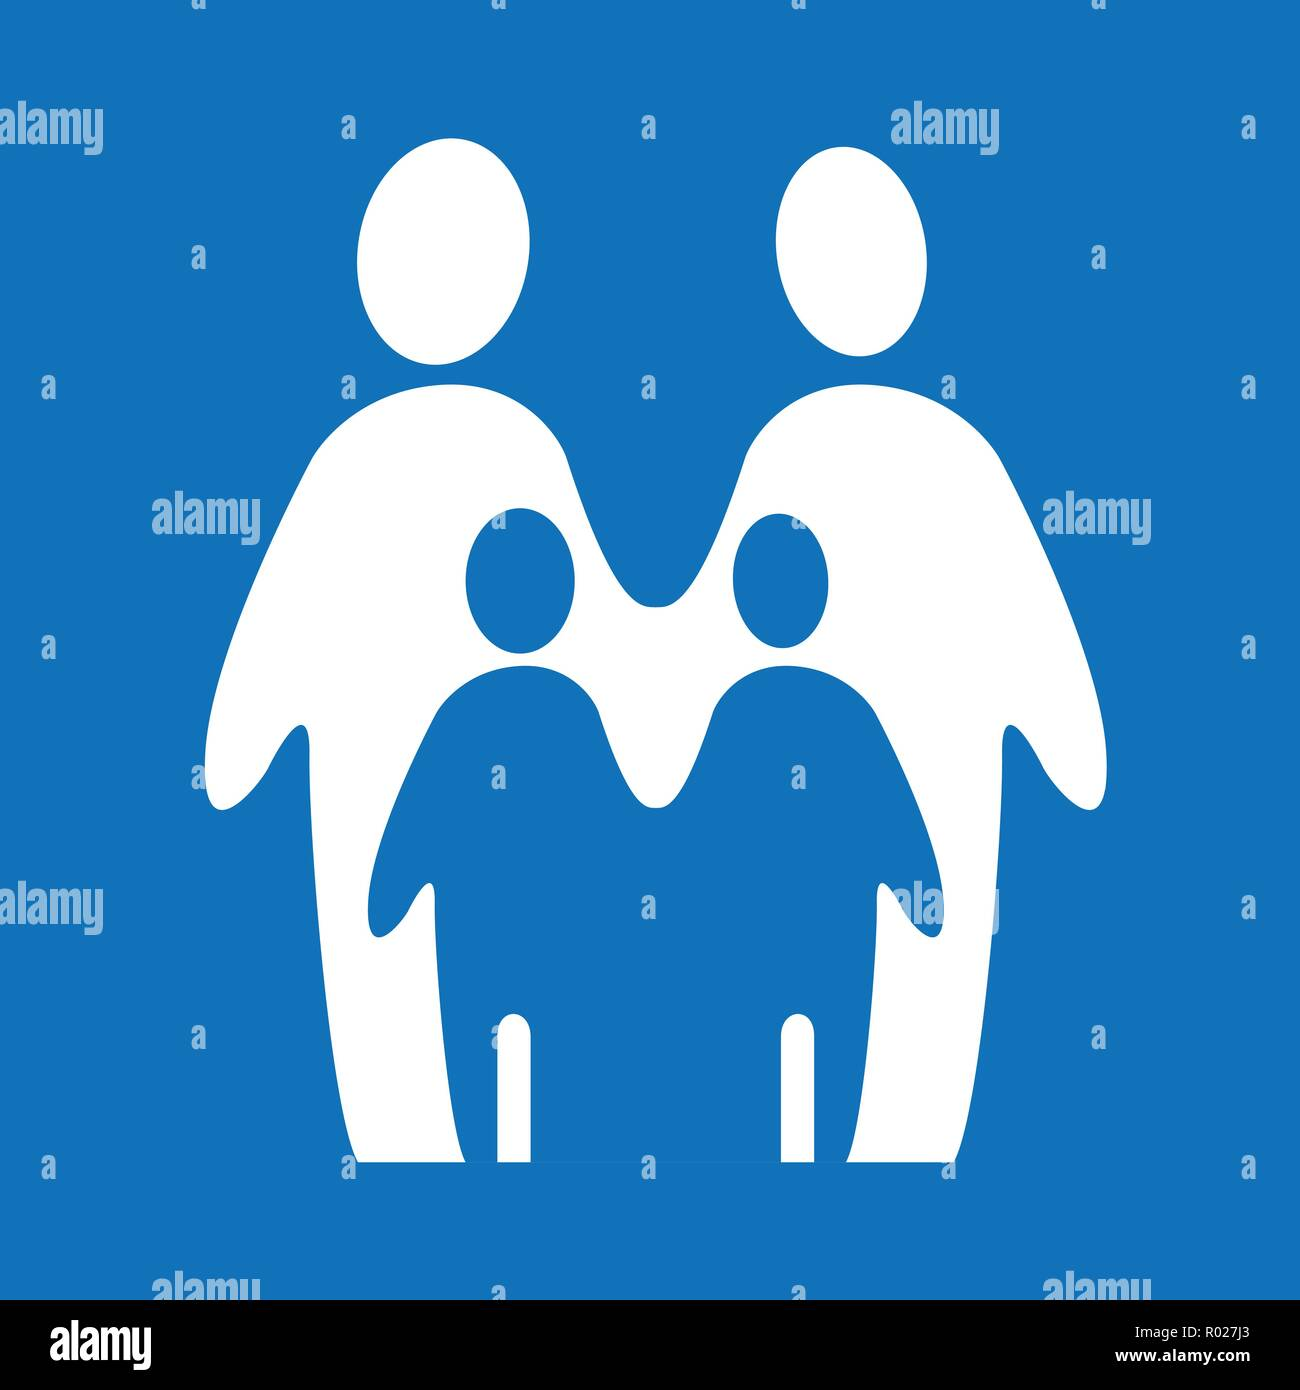 Two silhouettes forming a couple - Stock Image